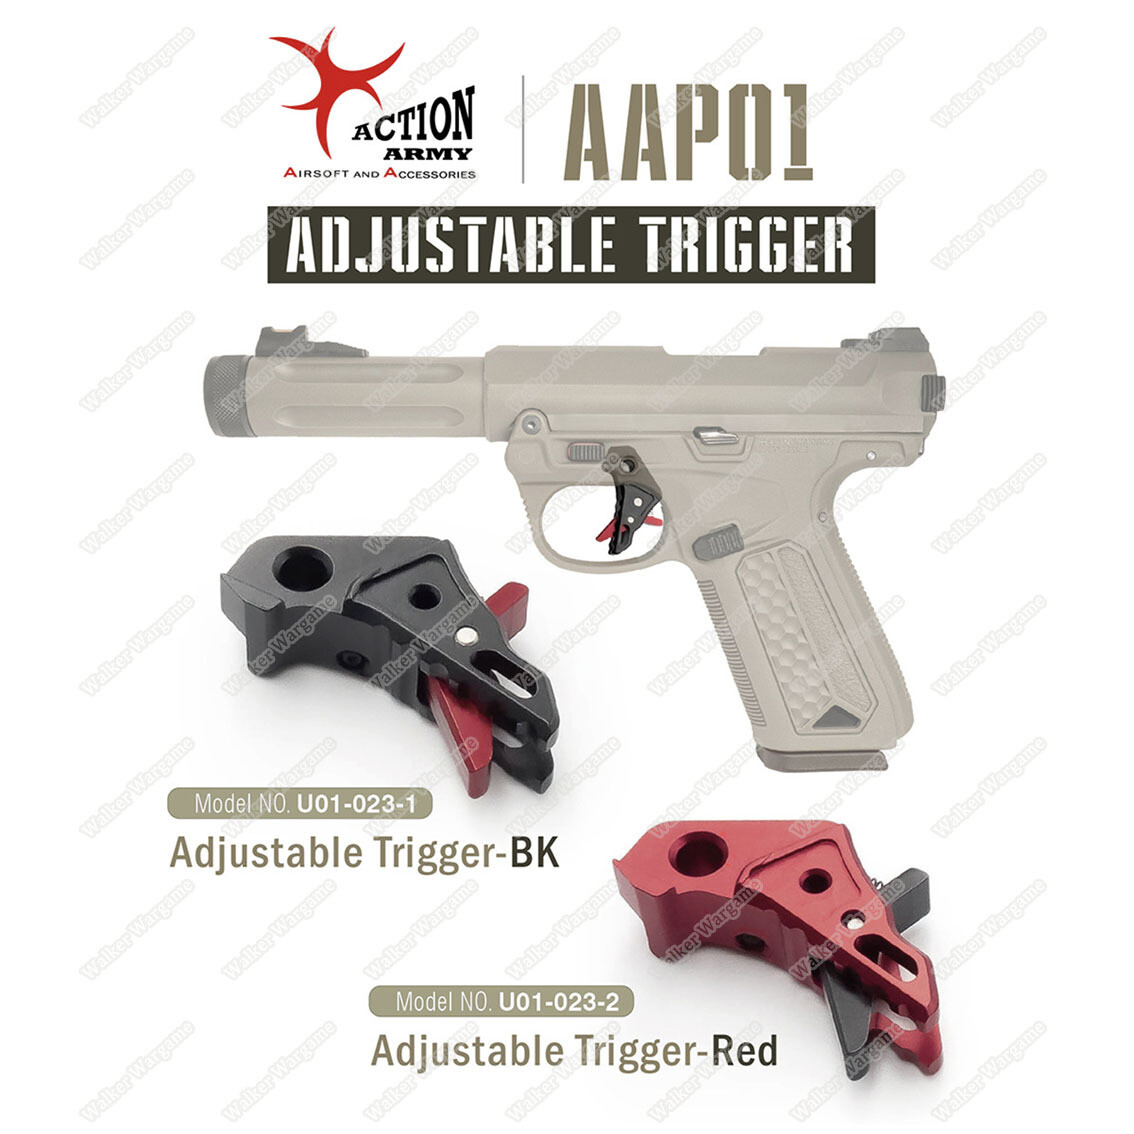 Action Army AAP01 Pistol Adjustable Trigger